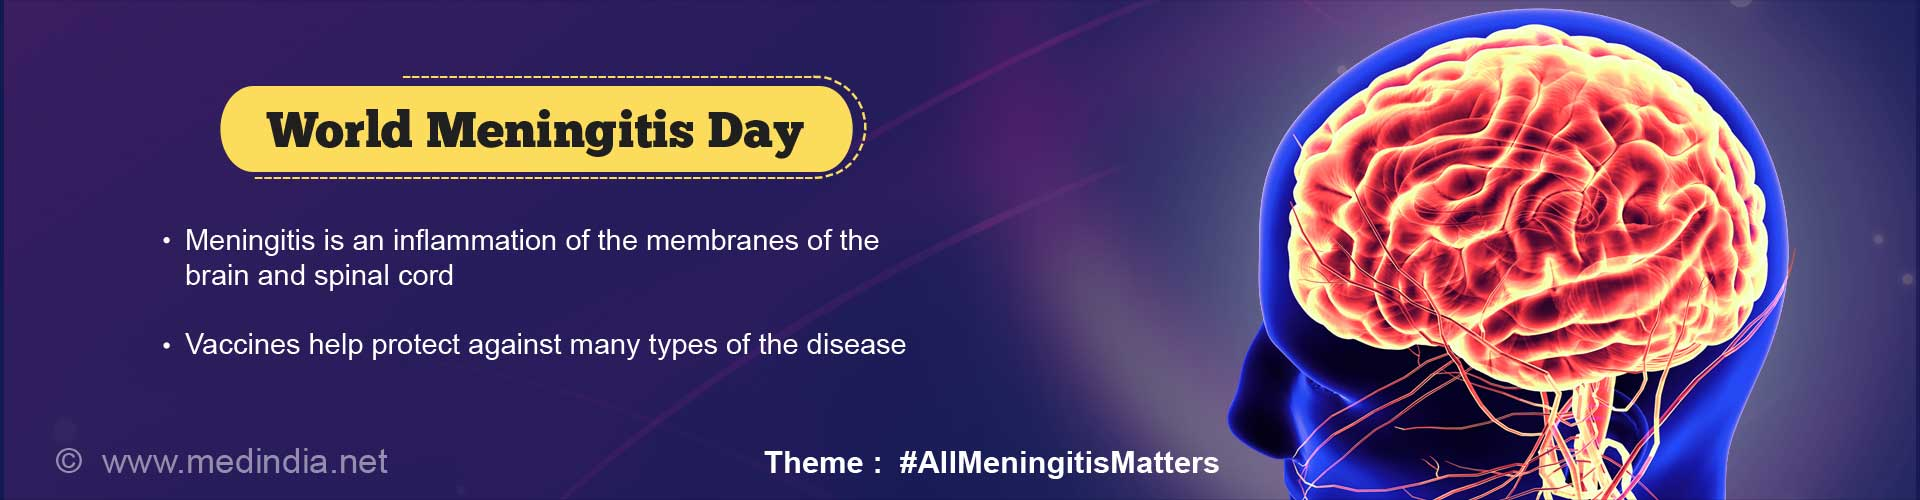 World Meningitis Day: All Meningitis Matters